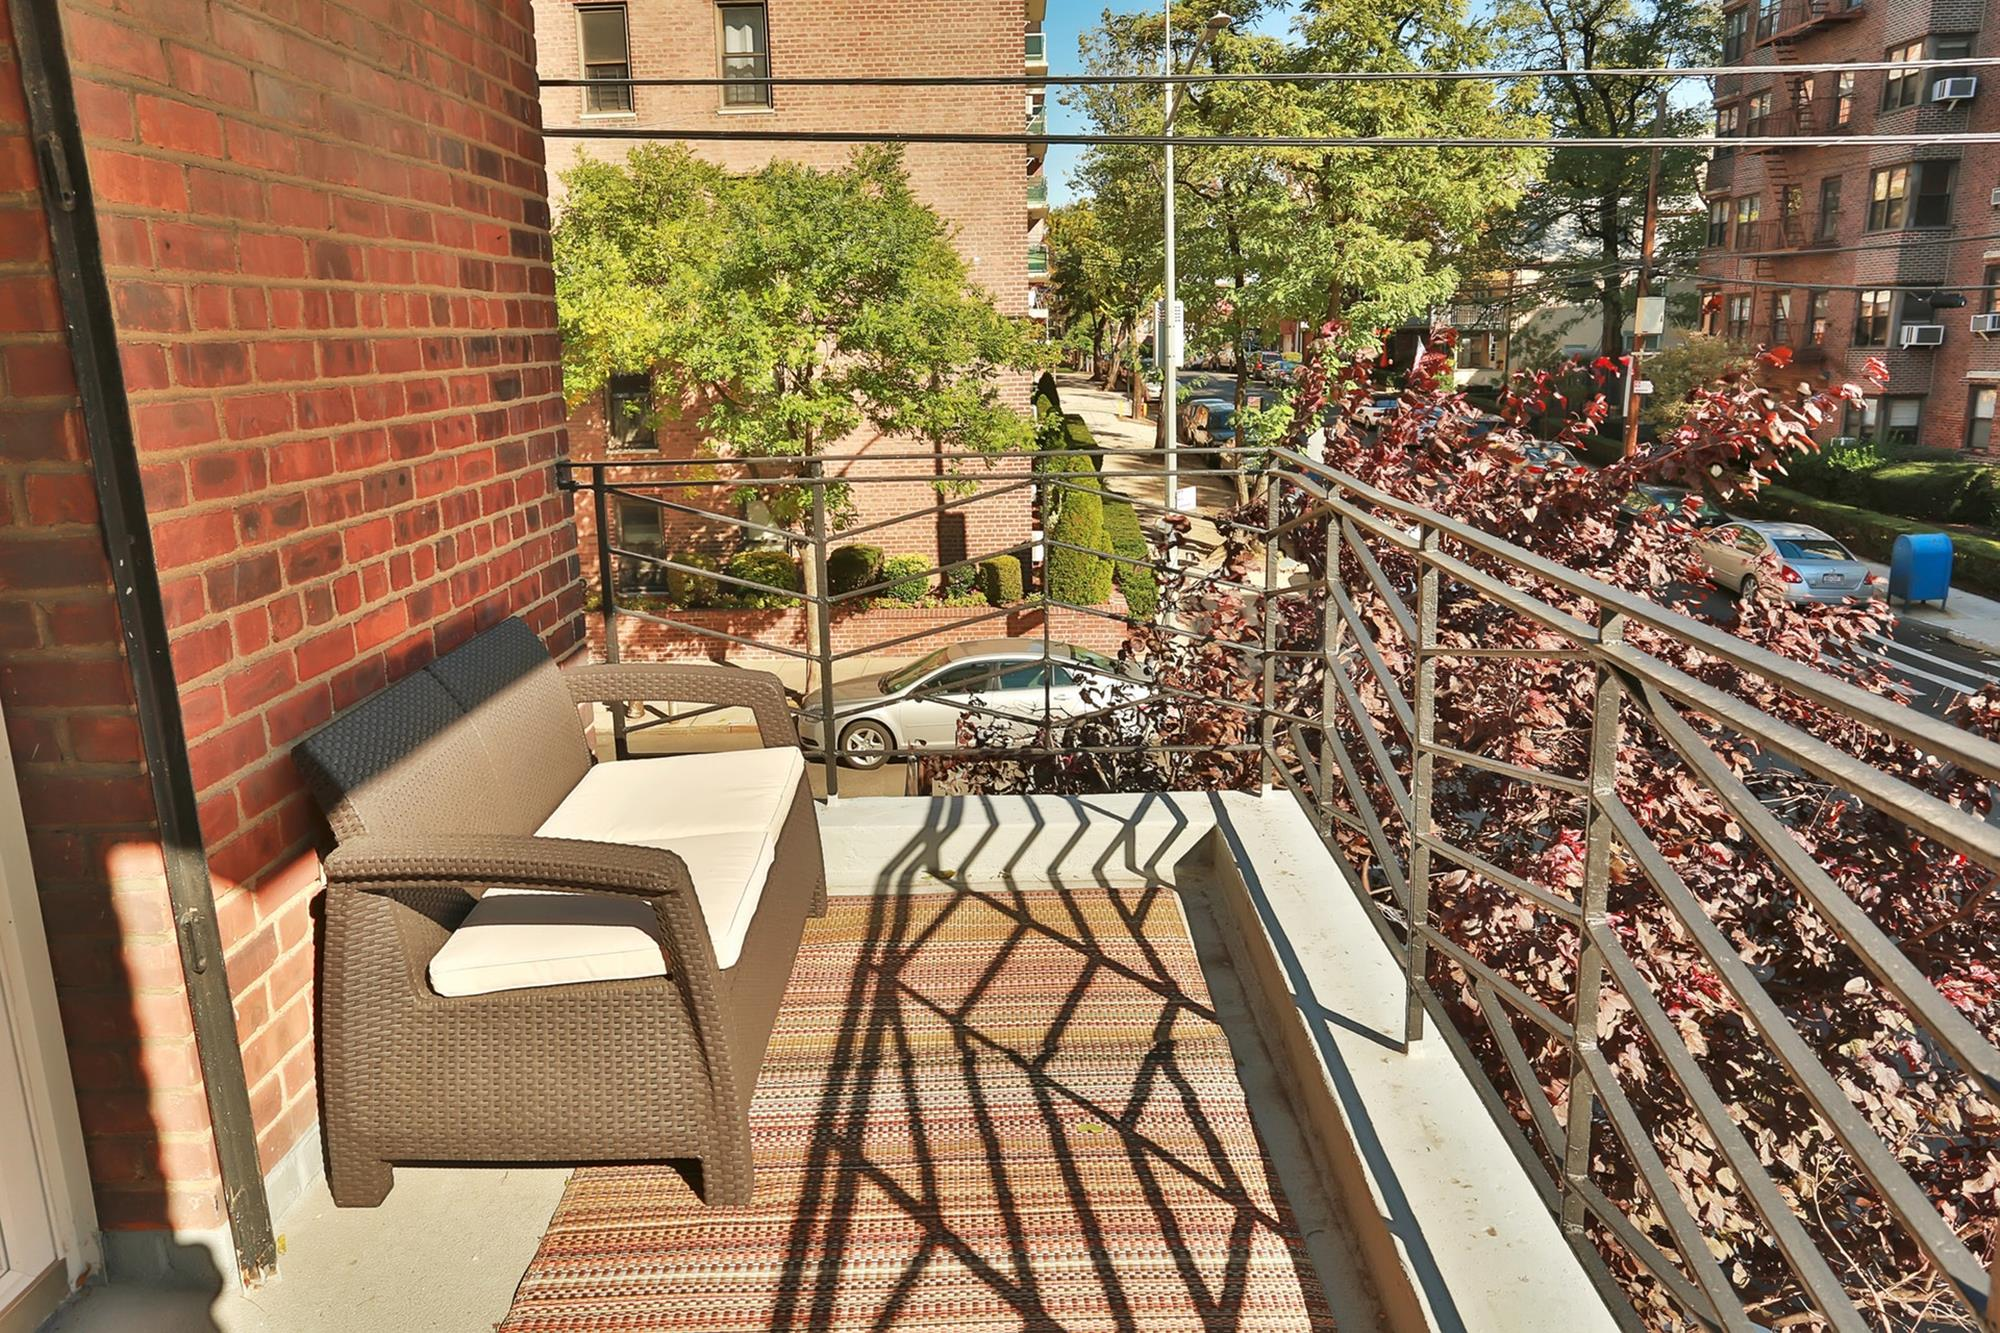 CENTRAL RIVERDALE: Spacious & Renovated 3-Bd. Co-op w/ Balcony at 3299 Cambridge Ave.